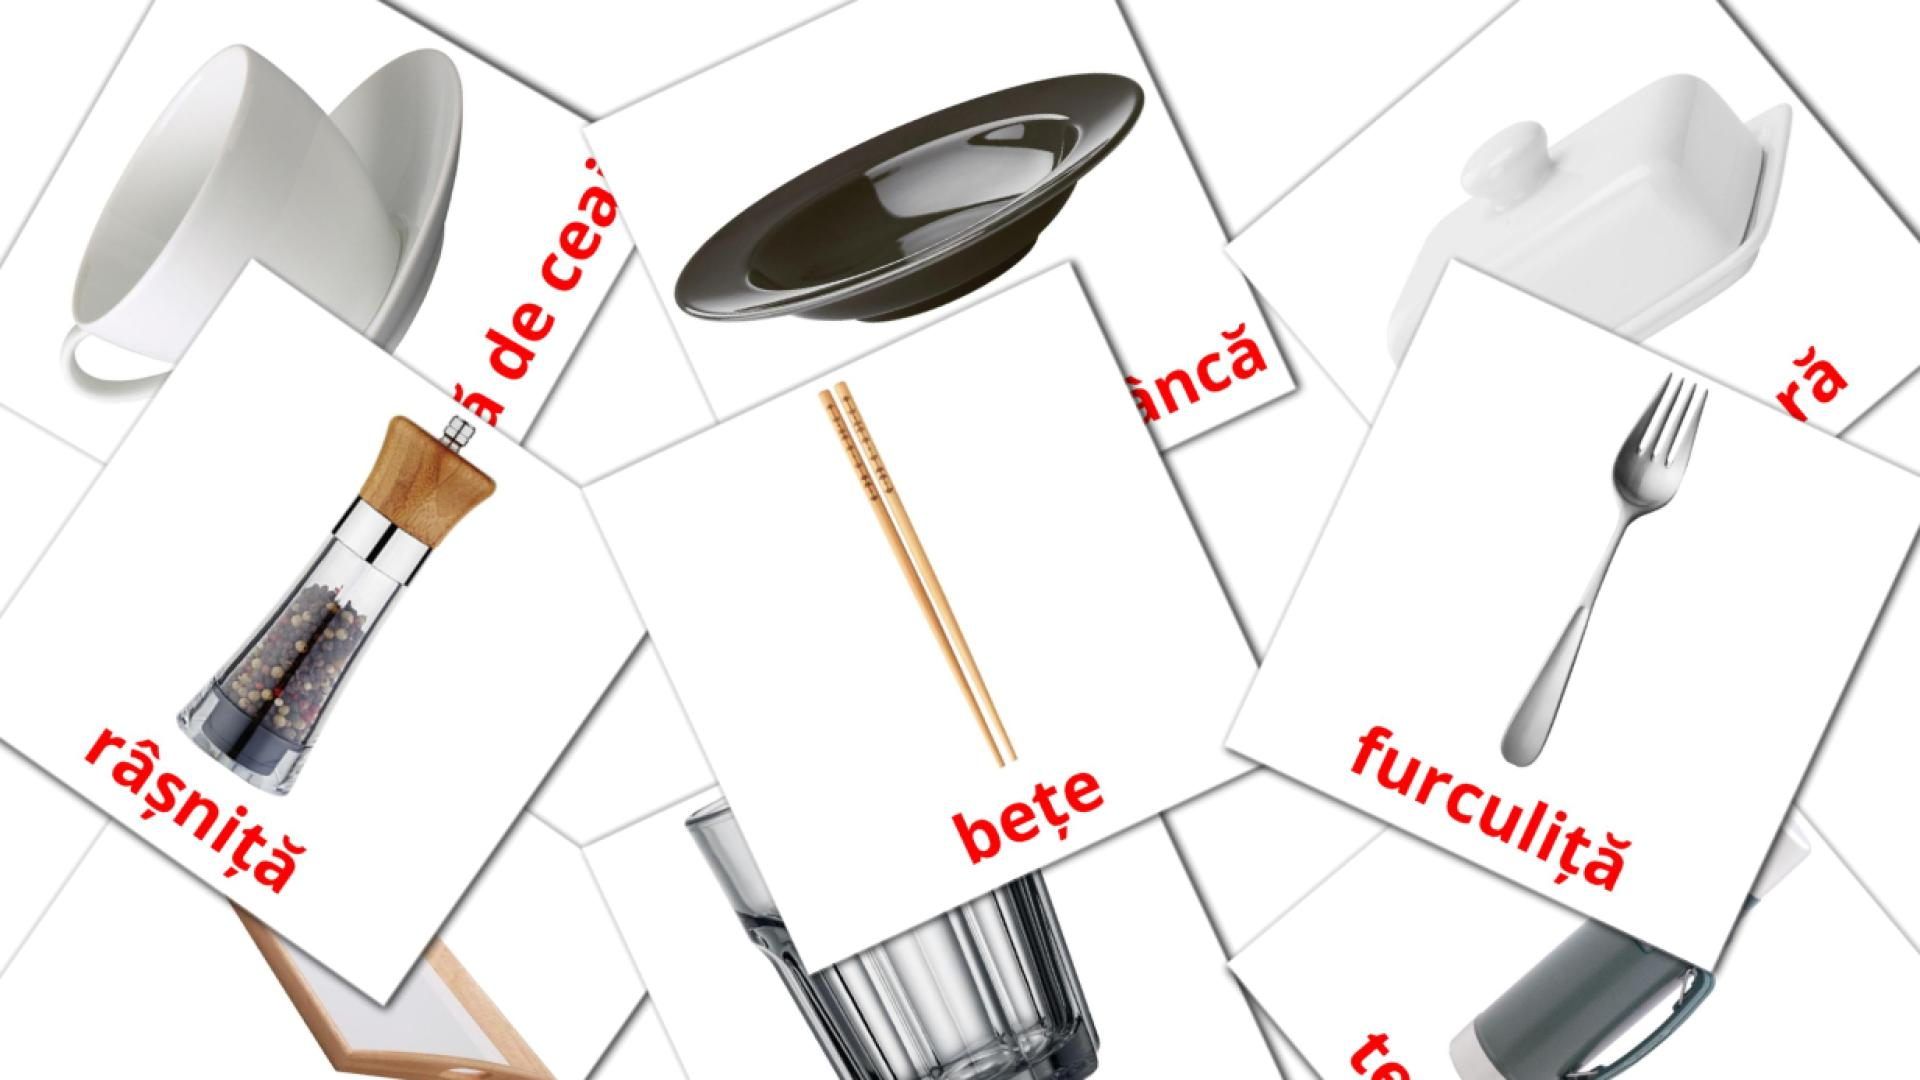 Crockery and cutlery flashcards